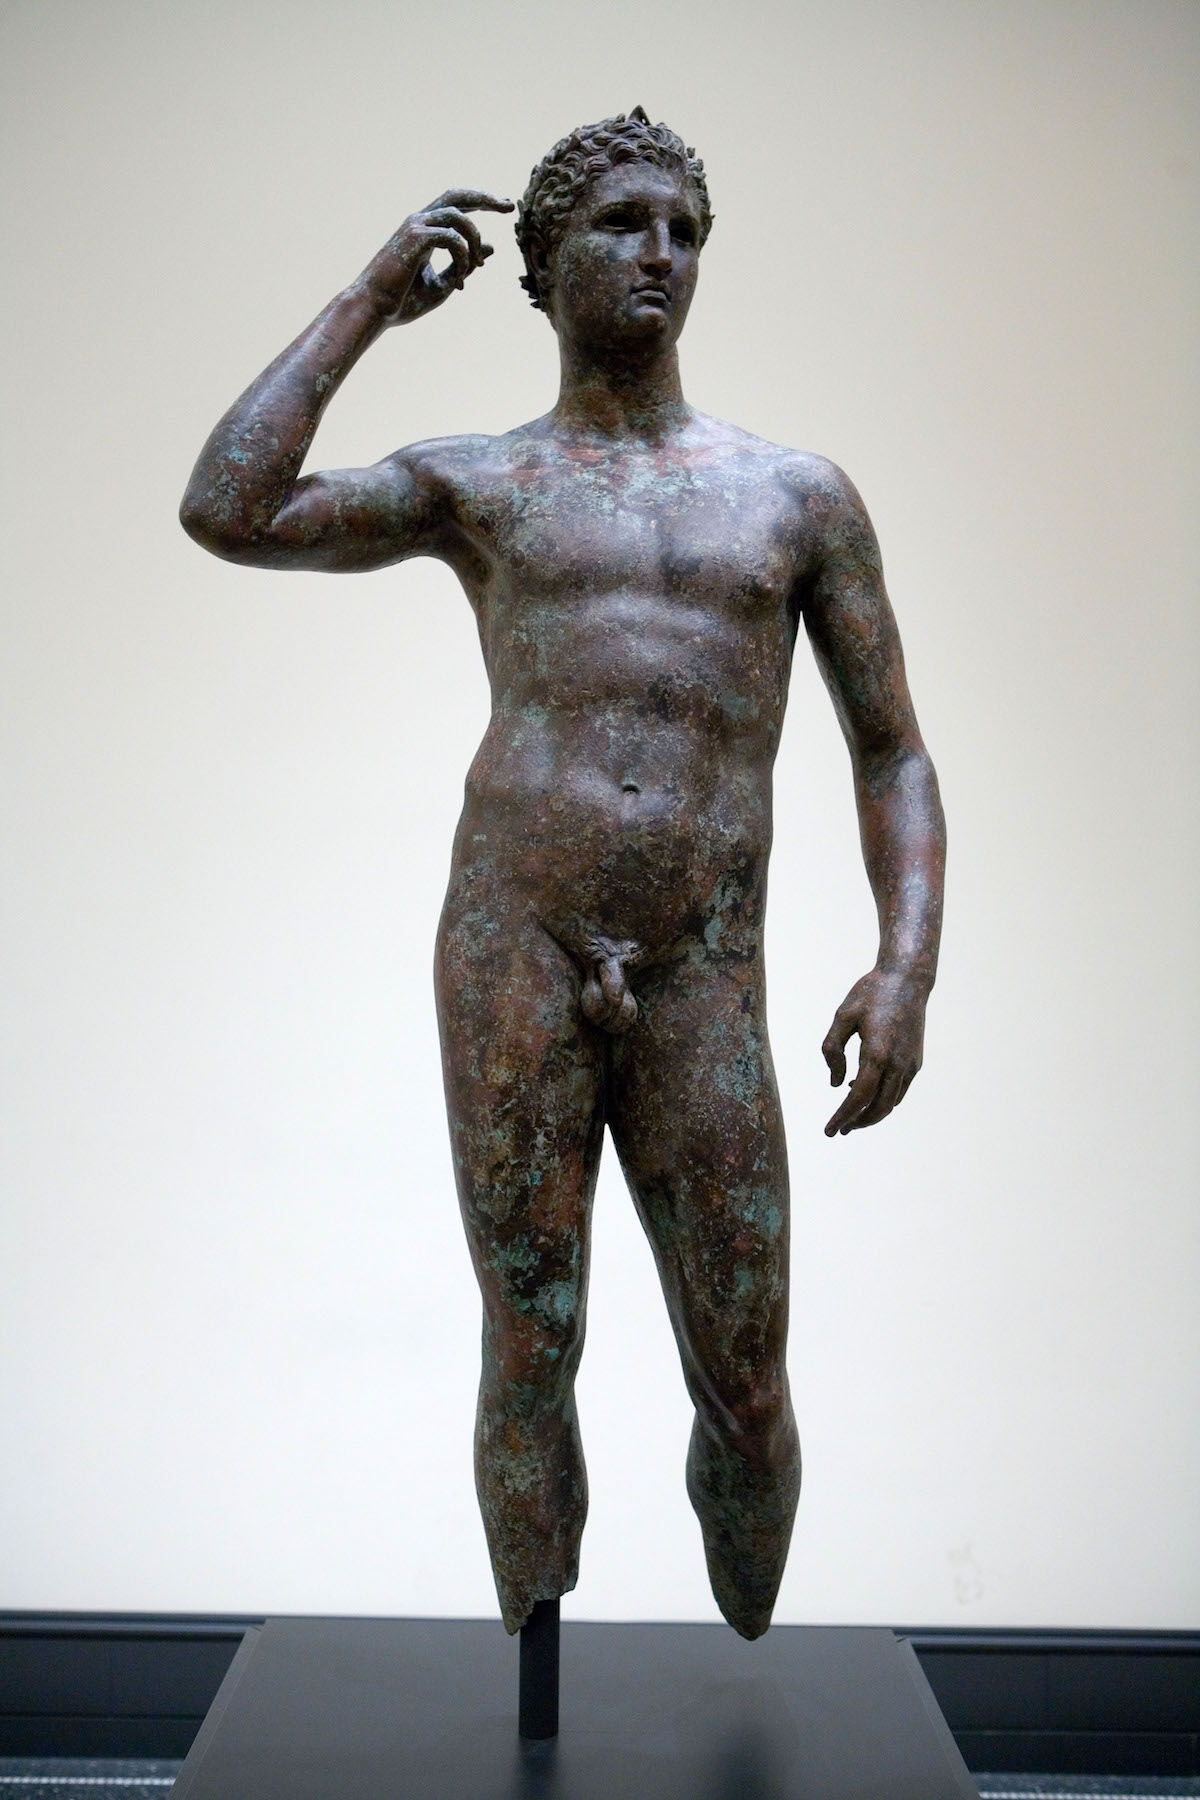 The ancient bronze statue known as Victorious Youth, or the Getty Bronze. Photo by Wtin, via Wikimedia Commons.